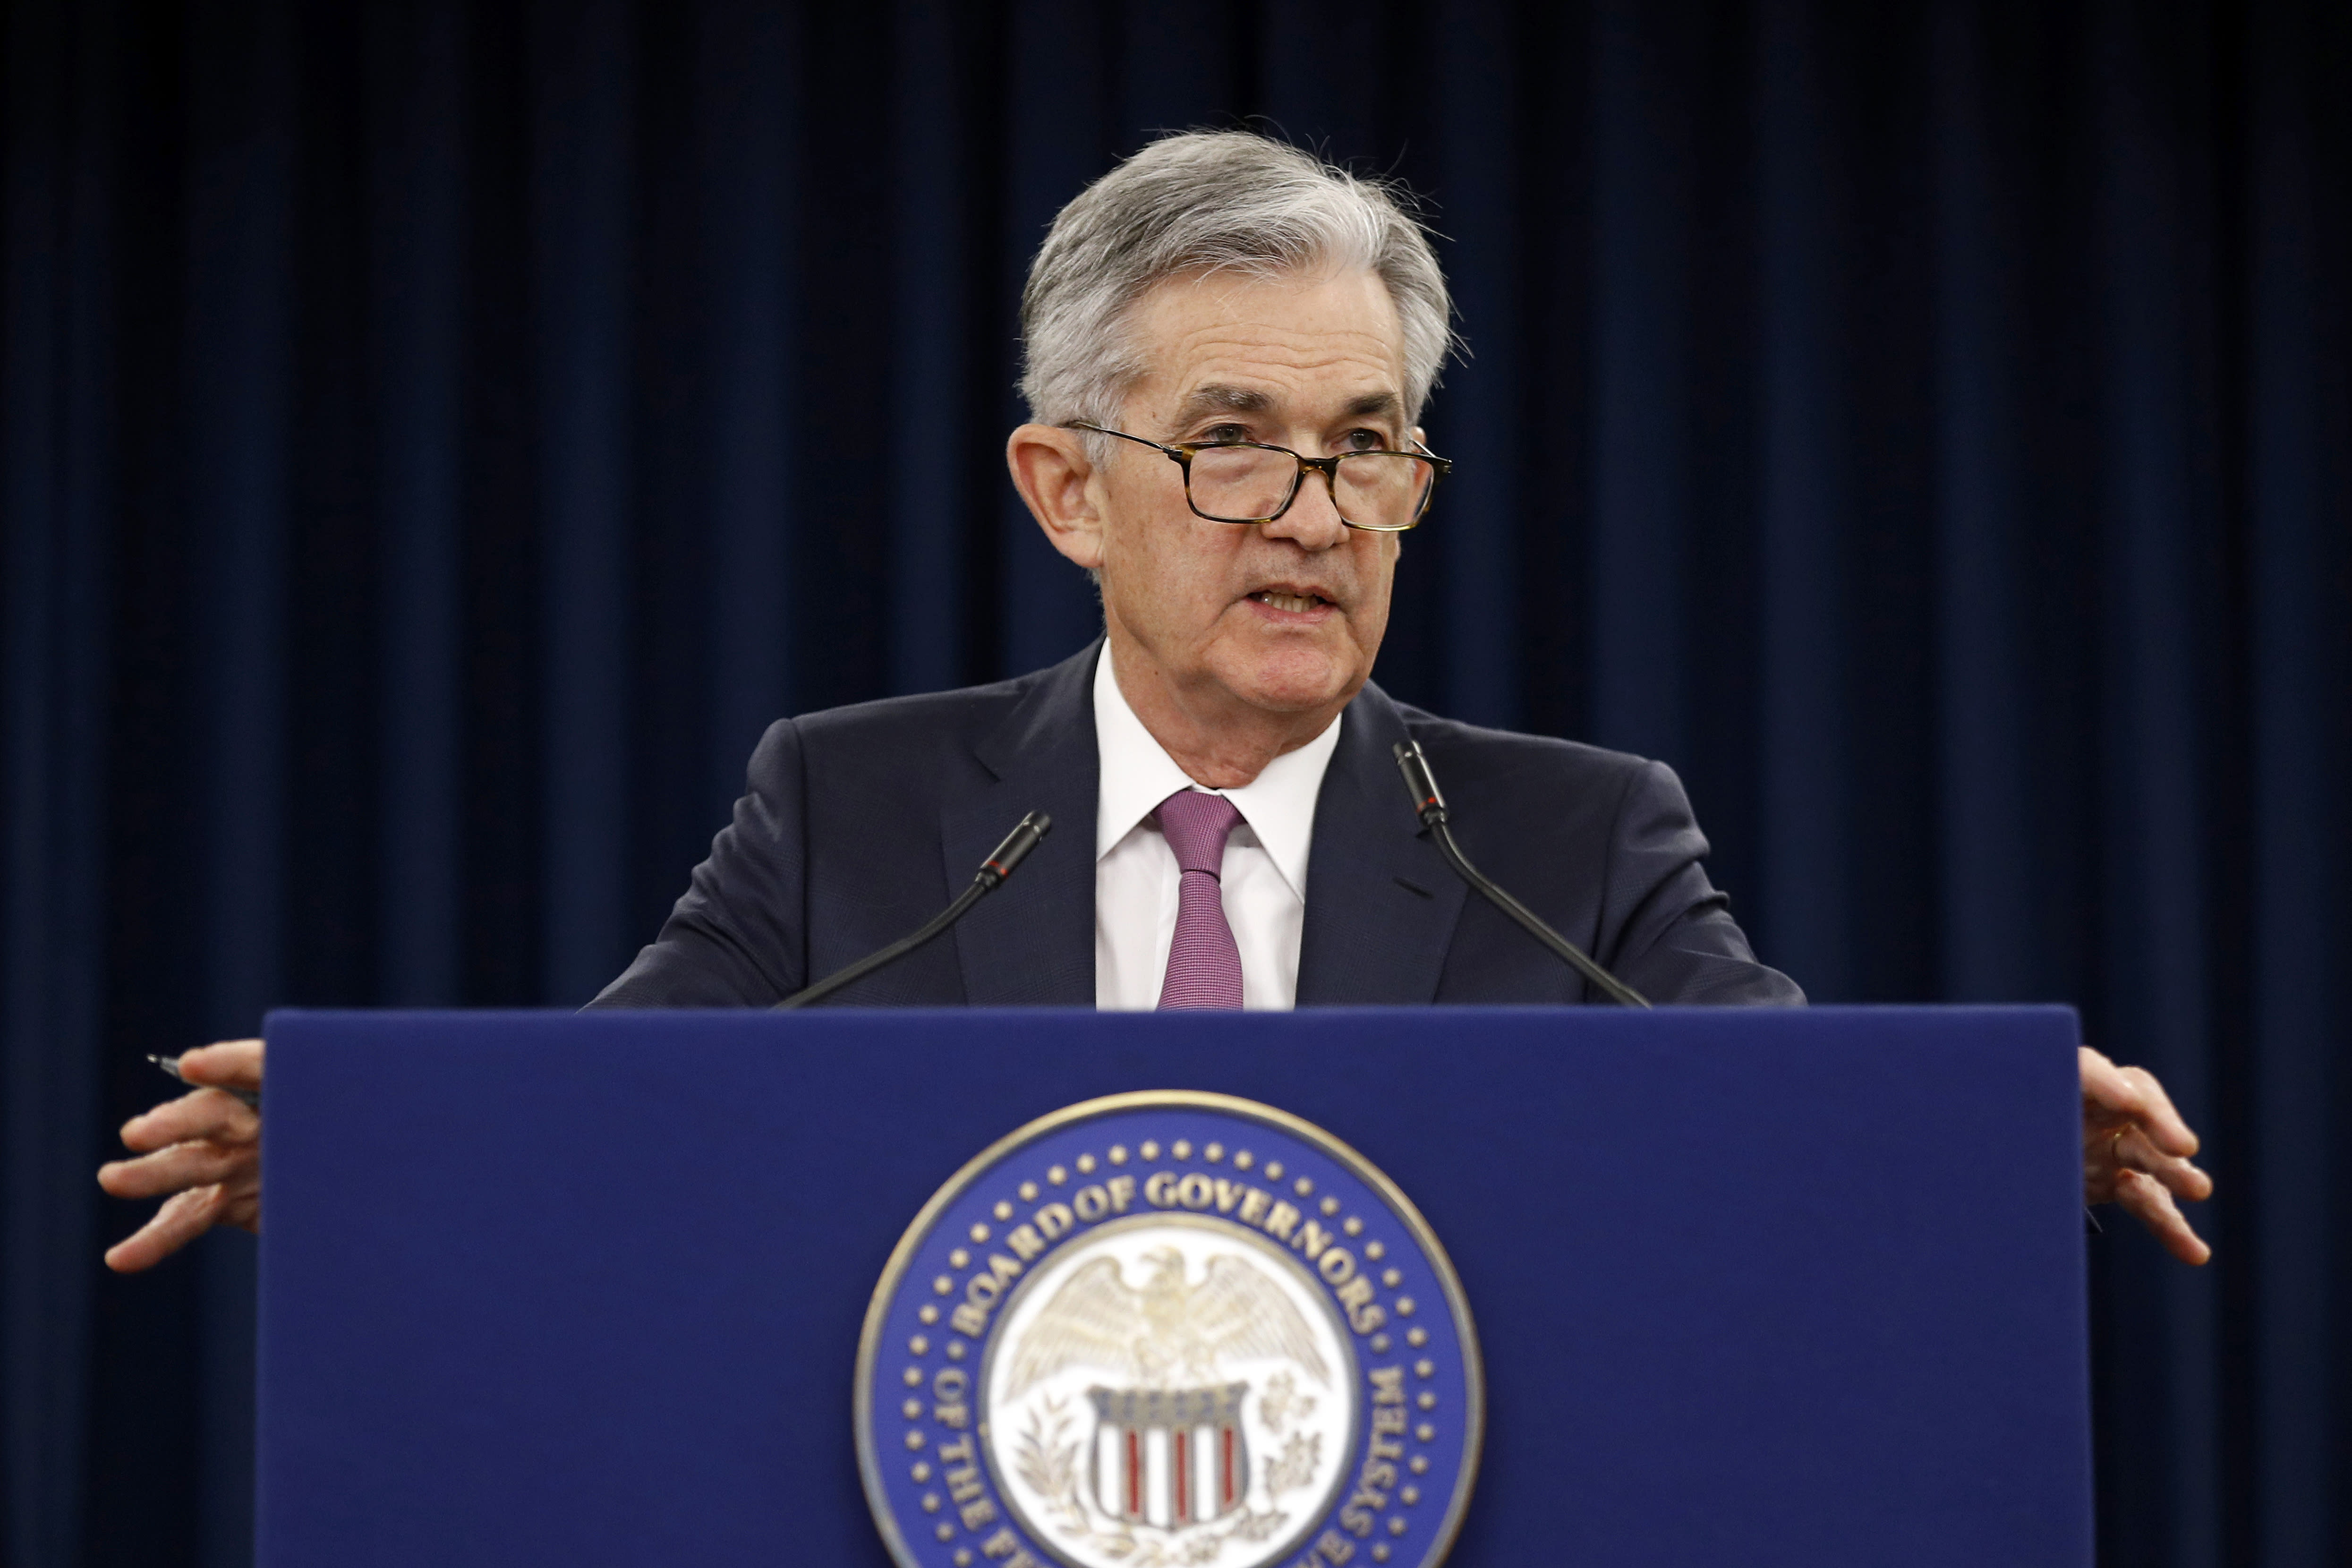 Fed Chair Jerome Powell warns of rising business debt